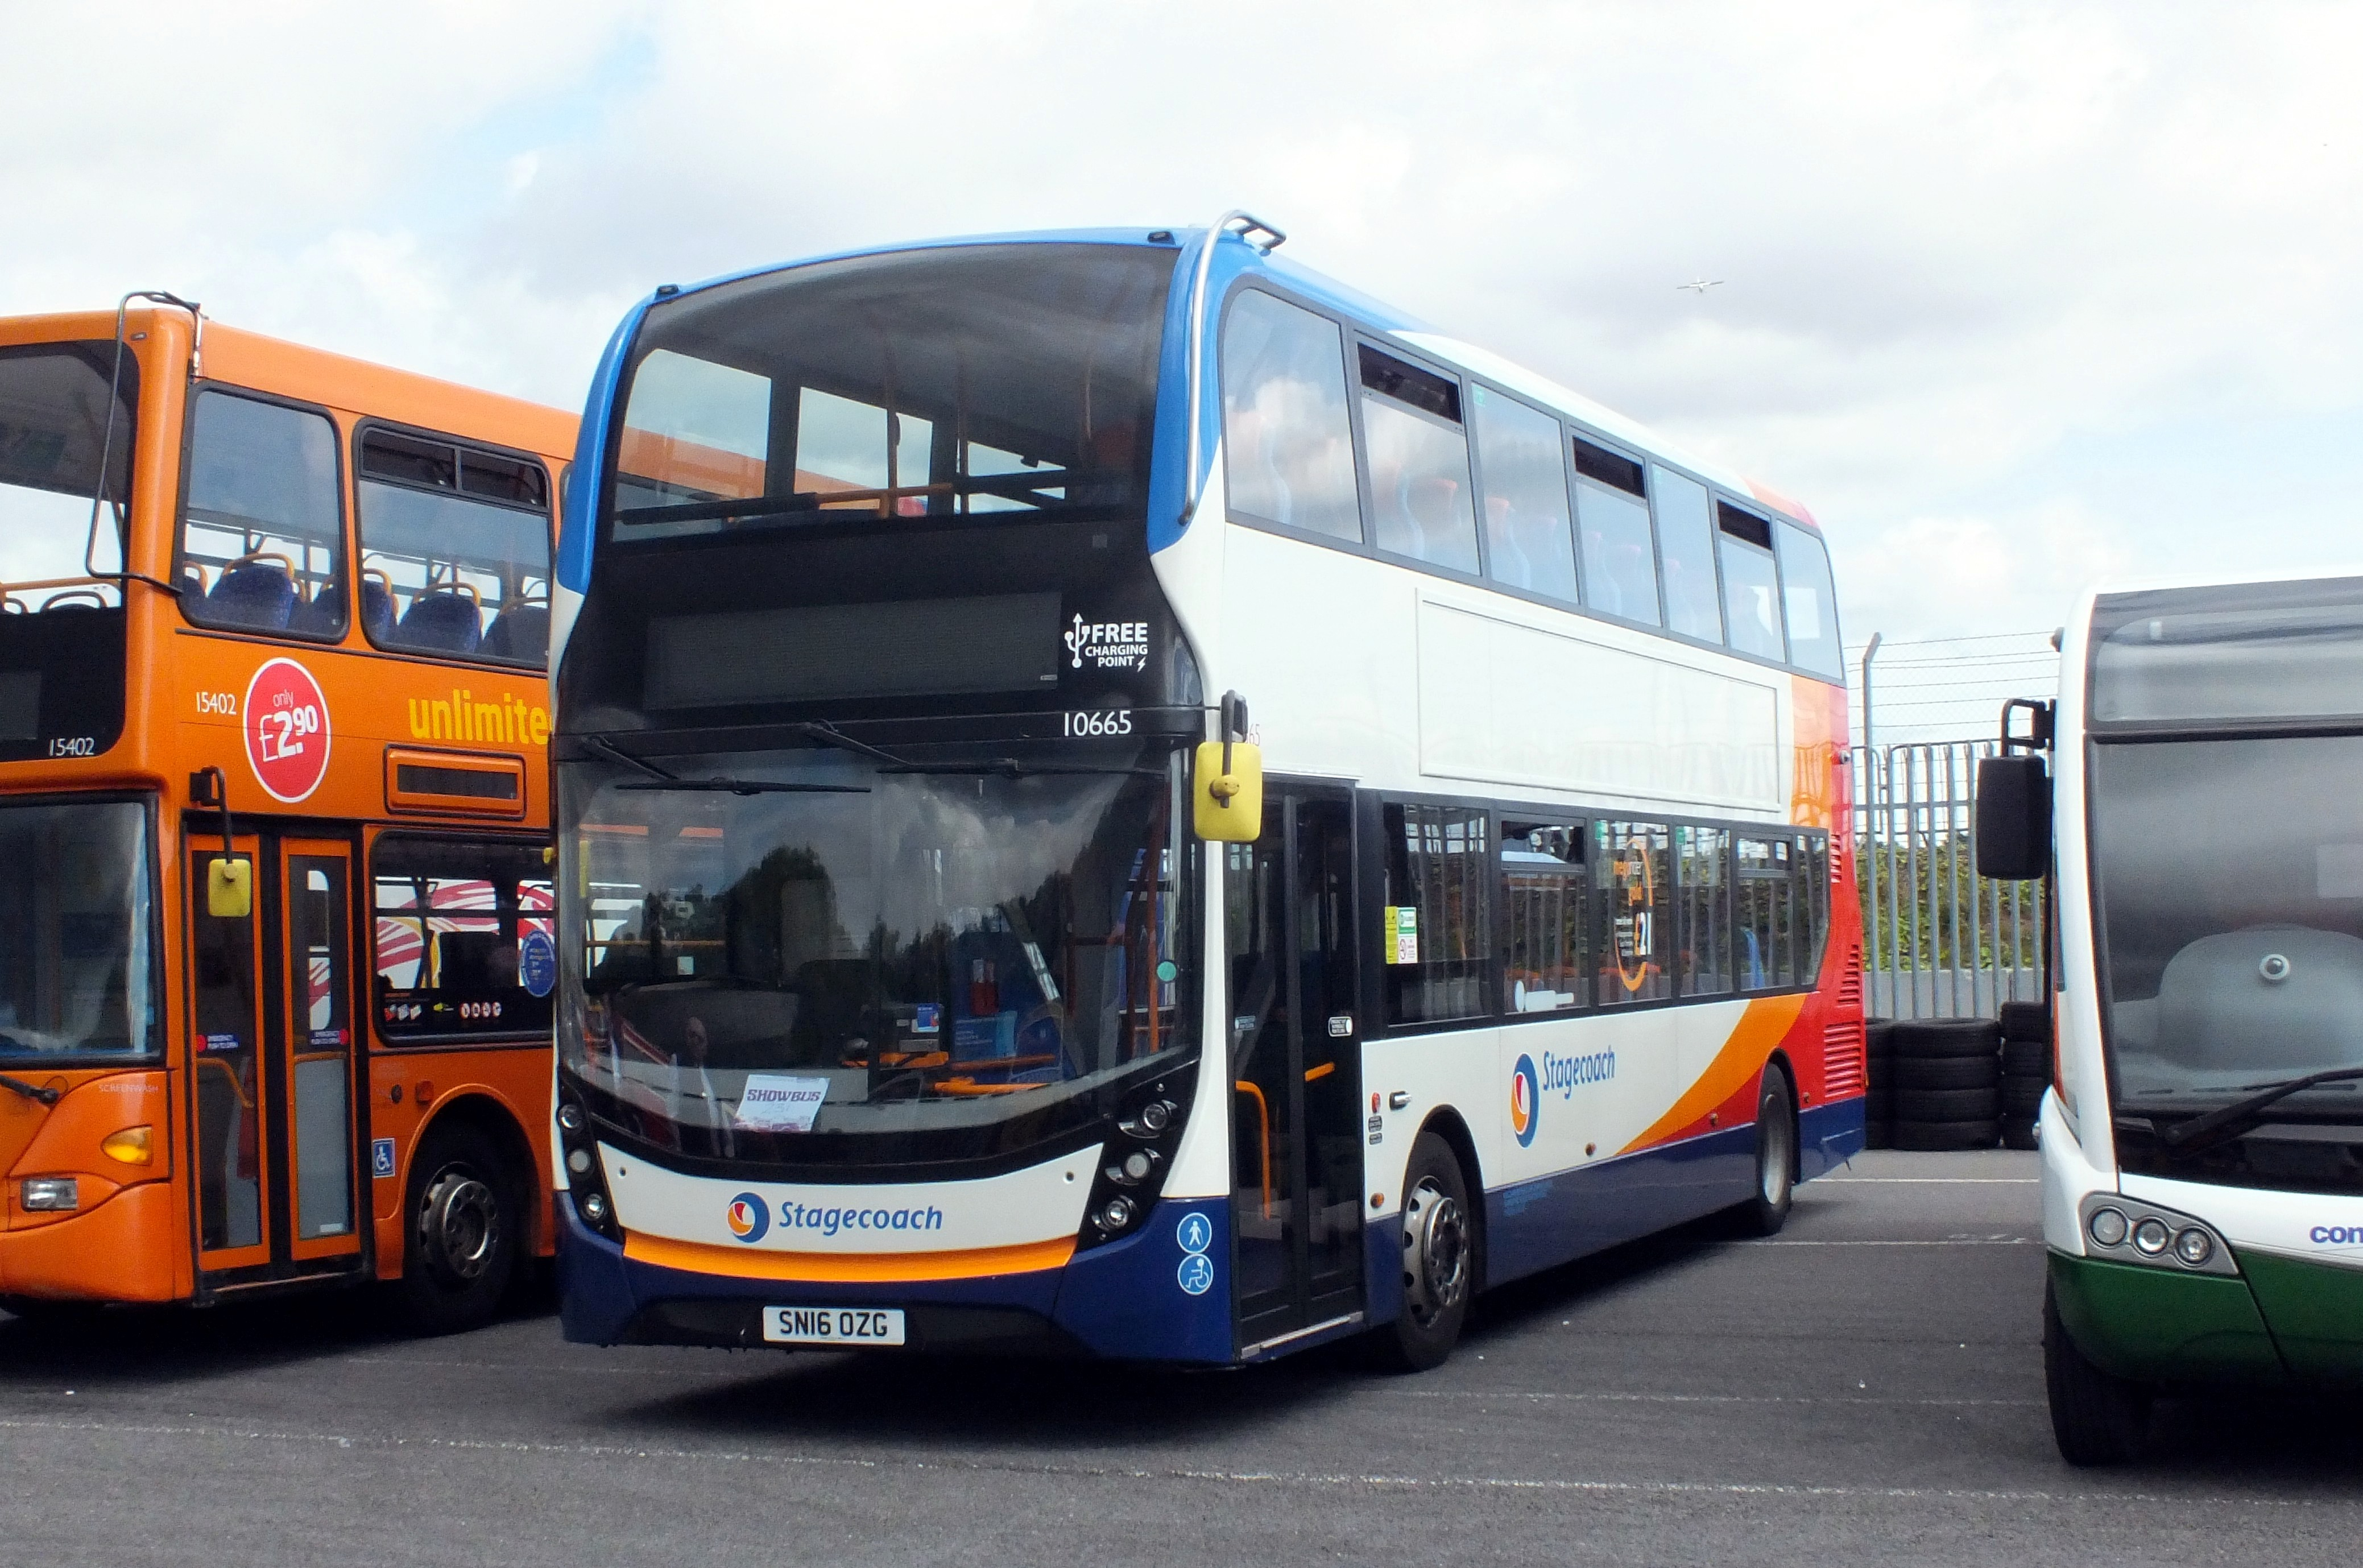 17 September 2017 Showbus, Donington. 474.jpg